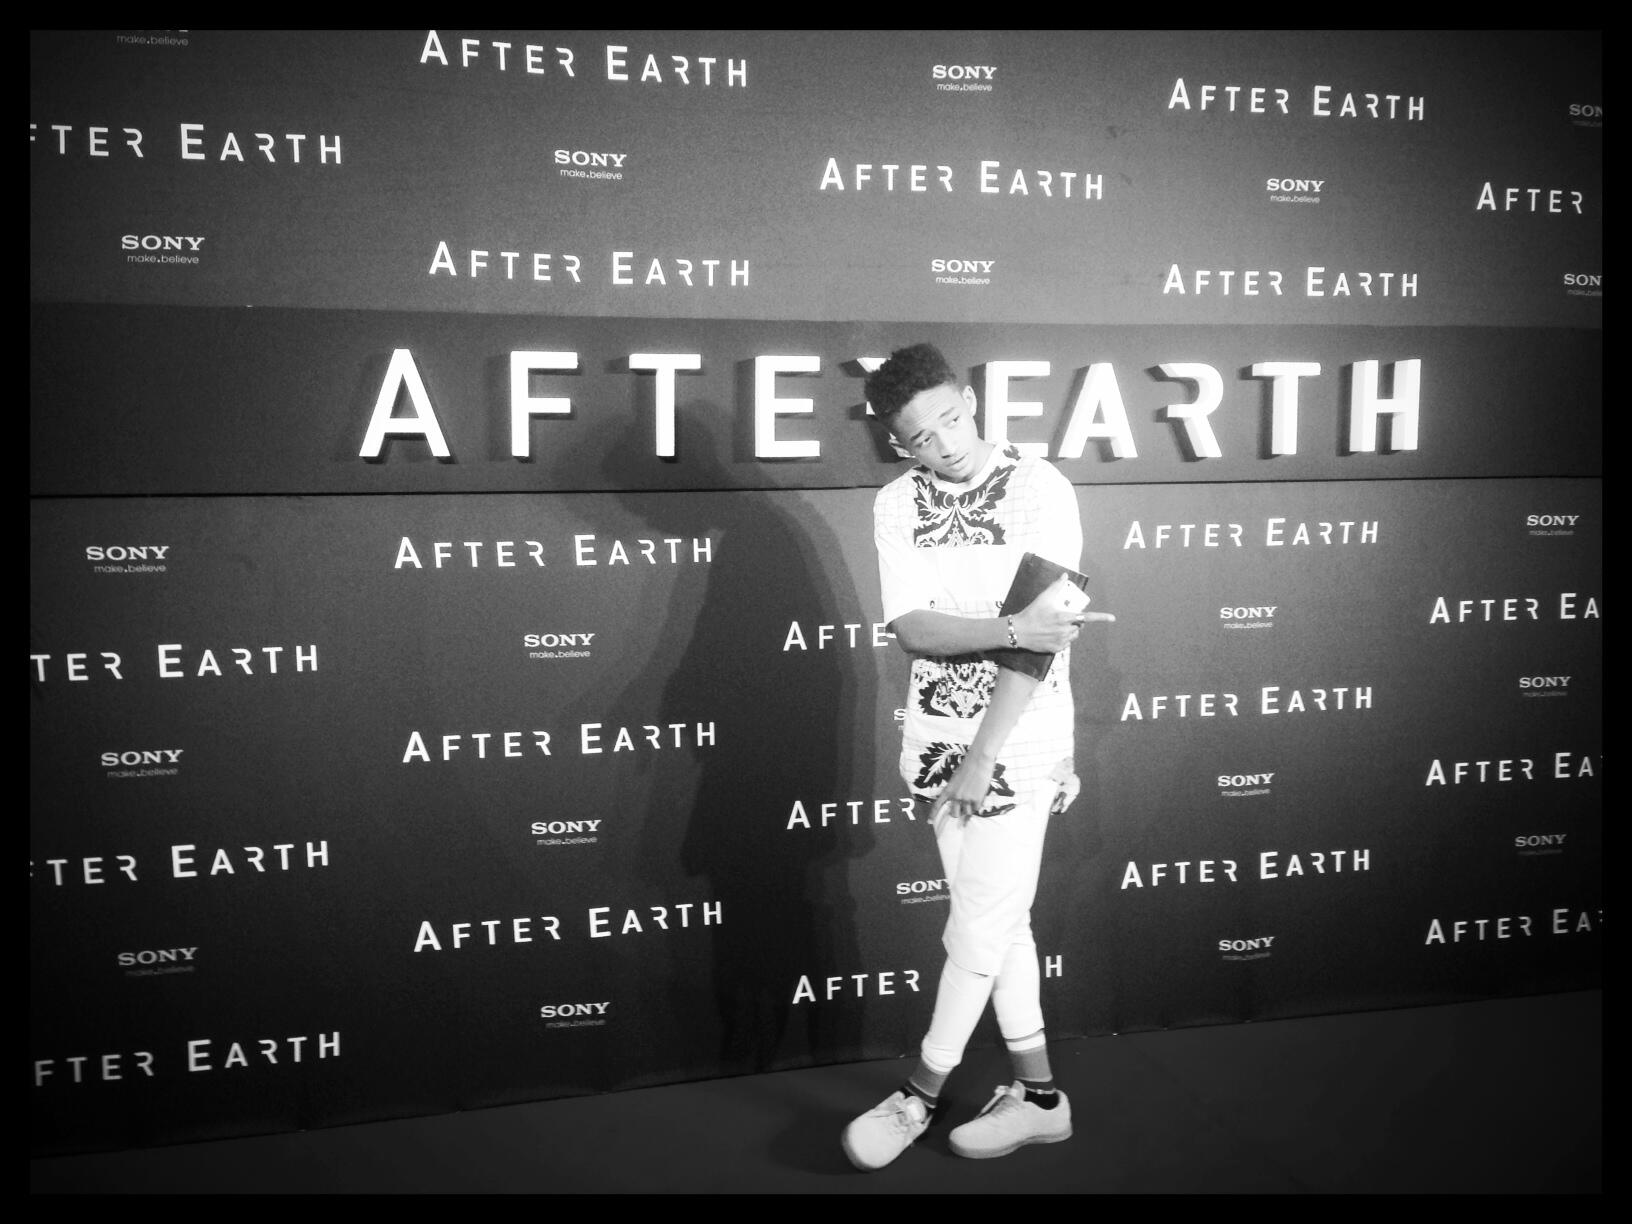 #AfterEarth http://t.co/wNcZXZ4LIk